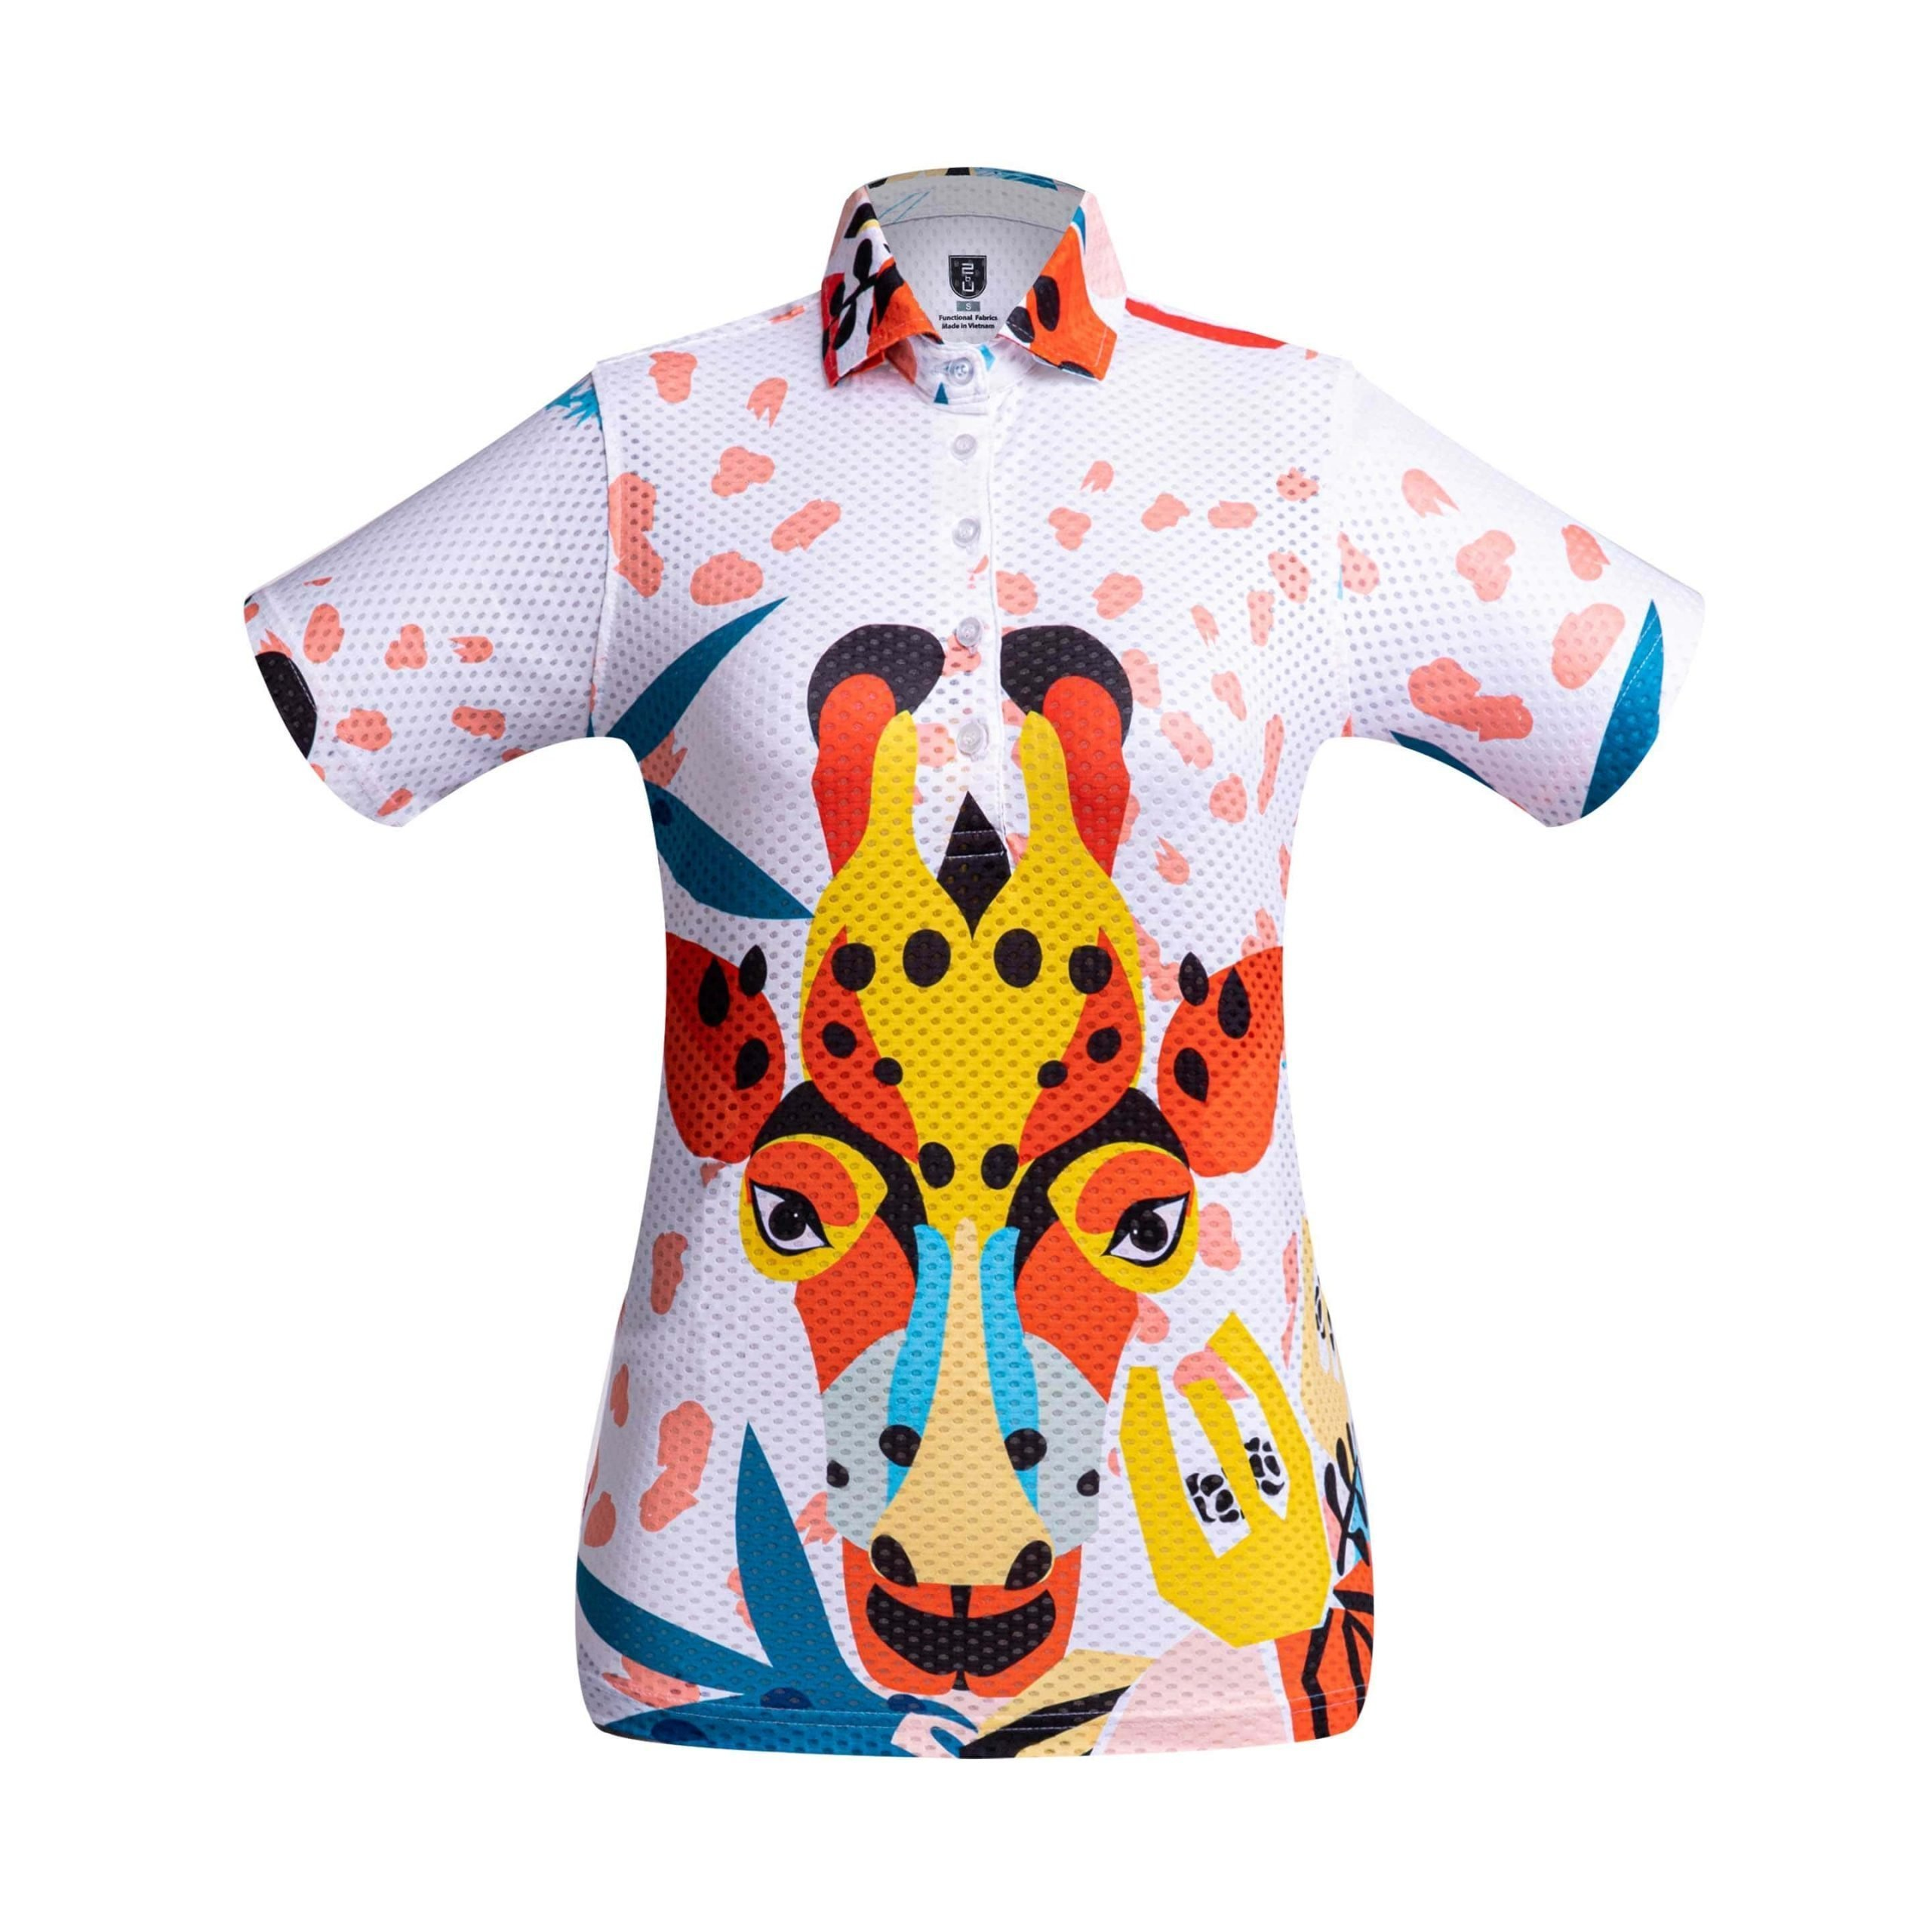 Golf Shirt – Giraffe